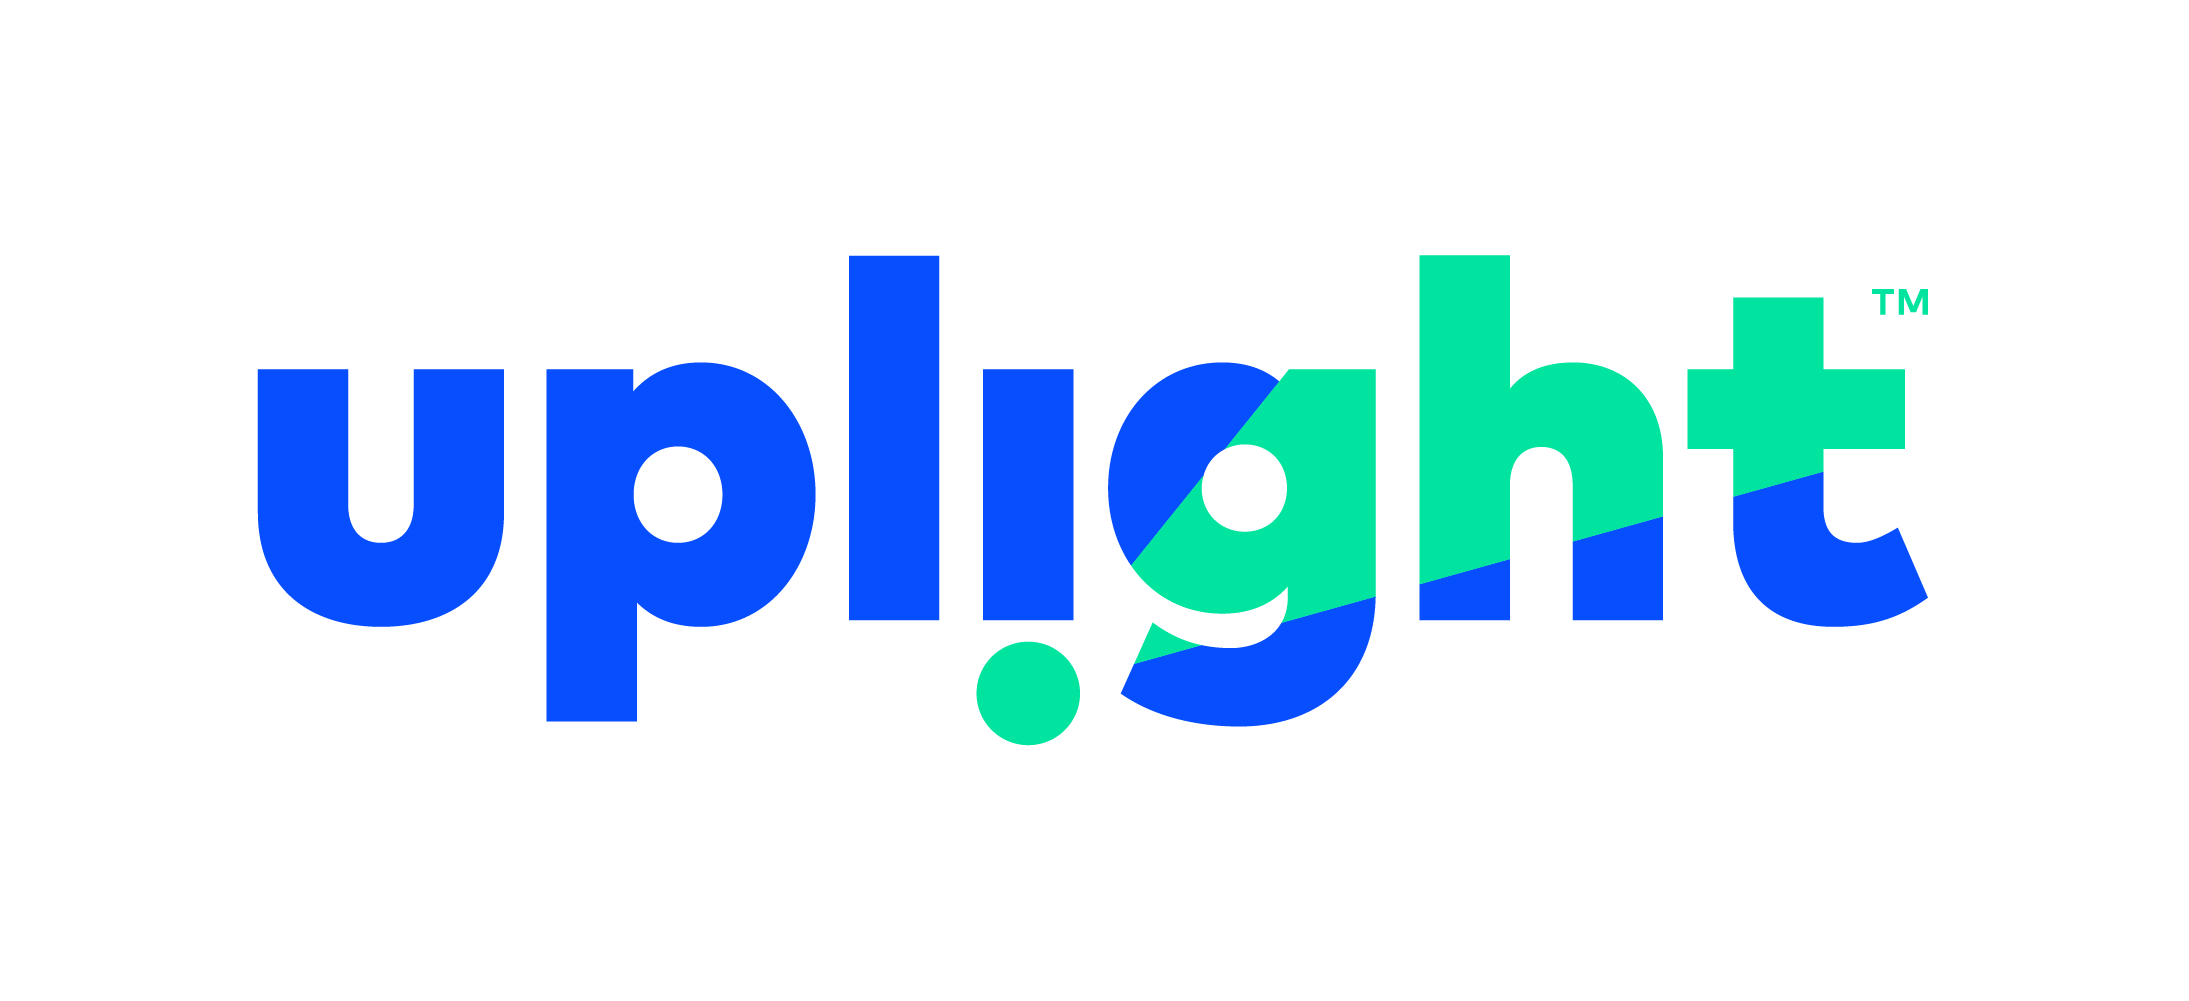 U_UplightLogo_RGB_BlueGreen (2)